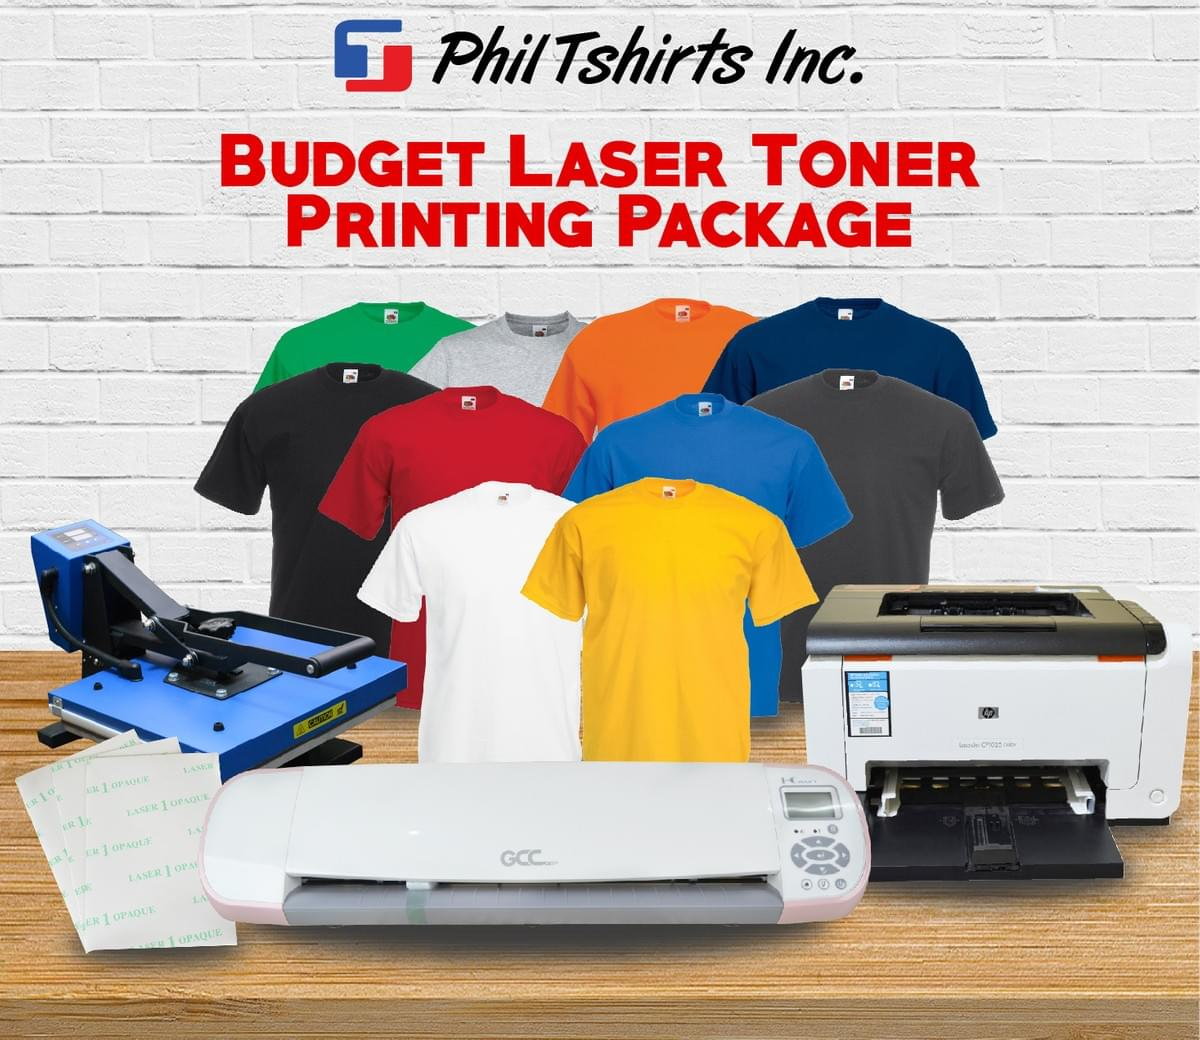 T Shirt Printing Business Package Philippines, Heat Transfer, Printing Business, Printing Machine, Digital Printing Business, Digital Machine, Cutter Plotter, Cutting Plotter, Vinyl, Heat Press